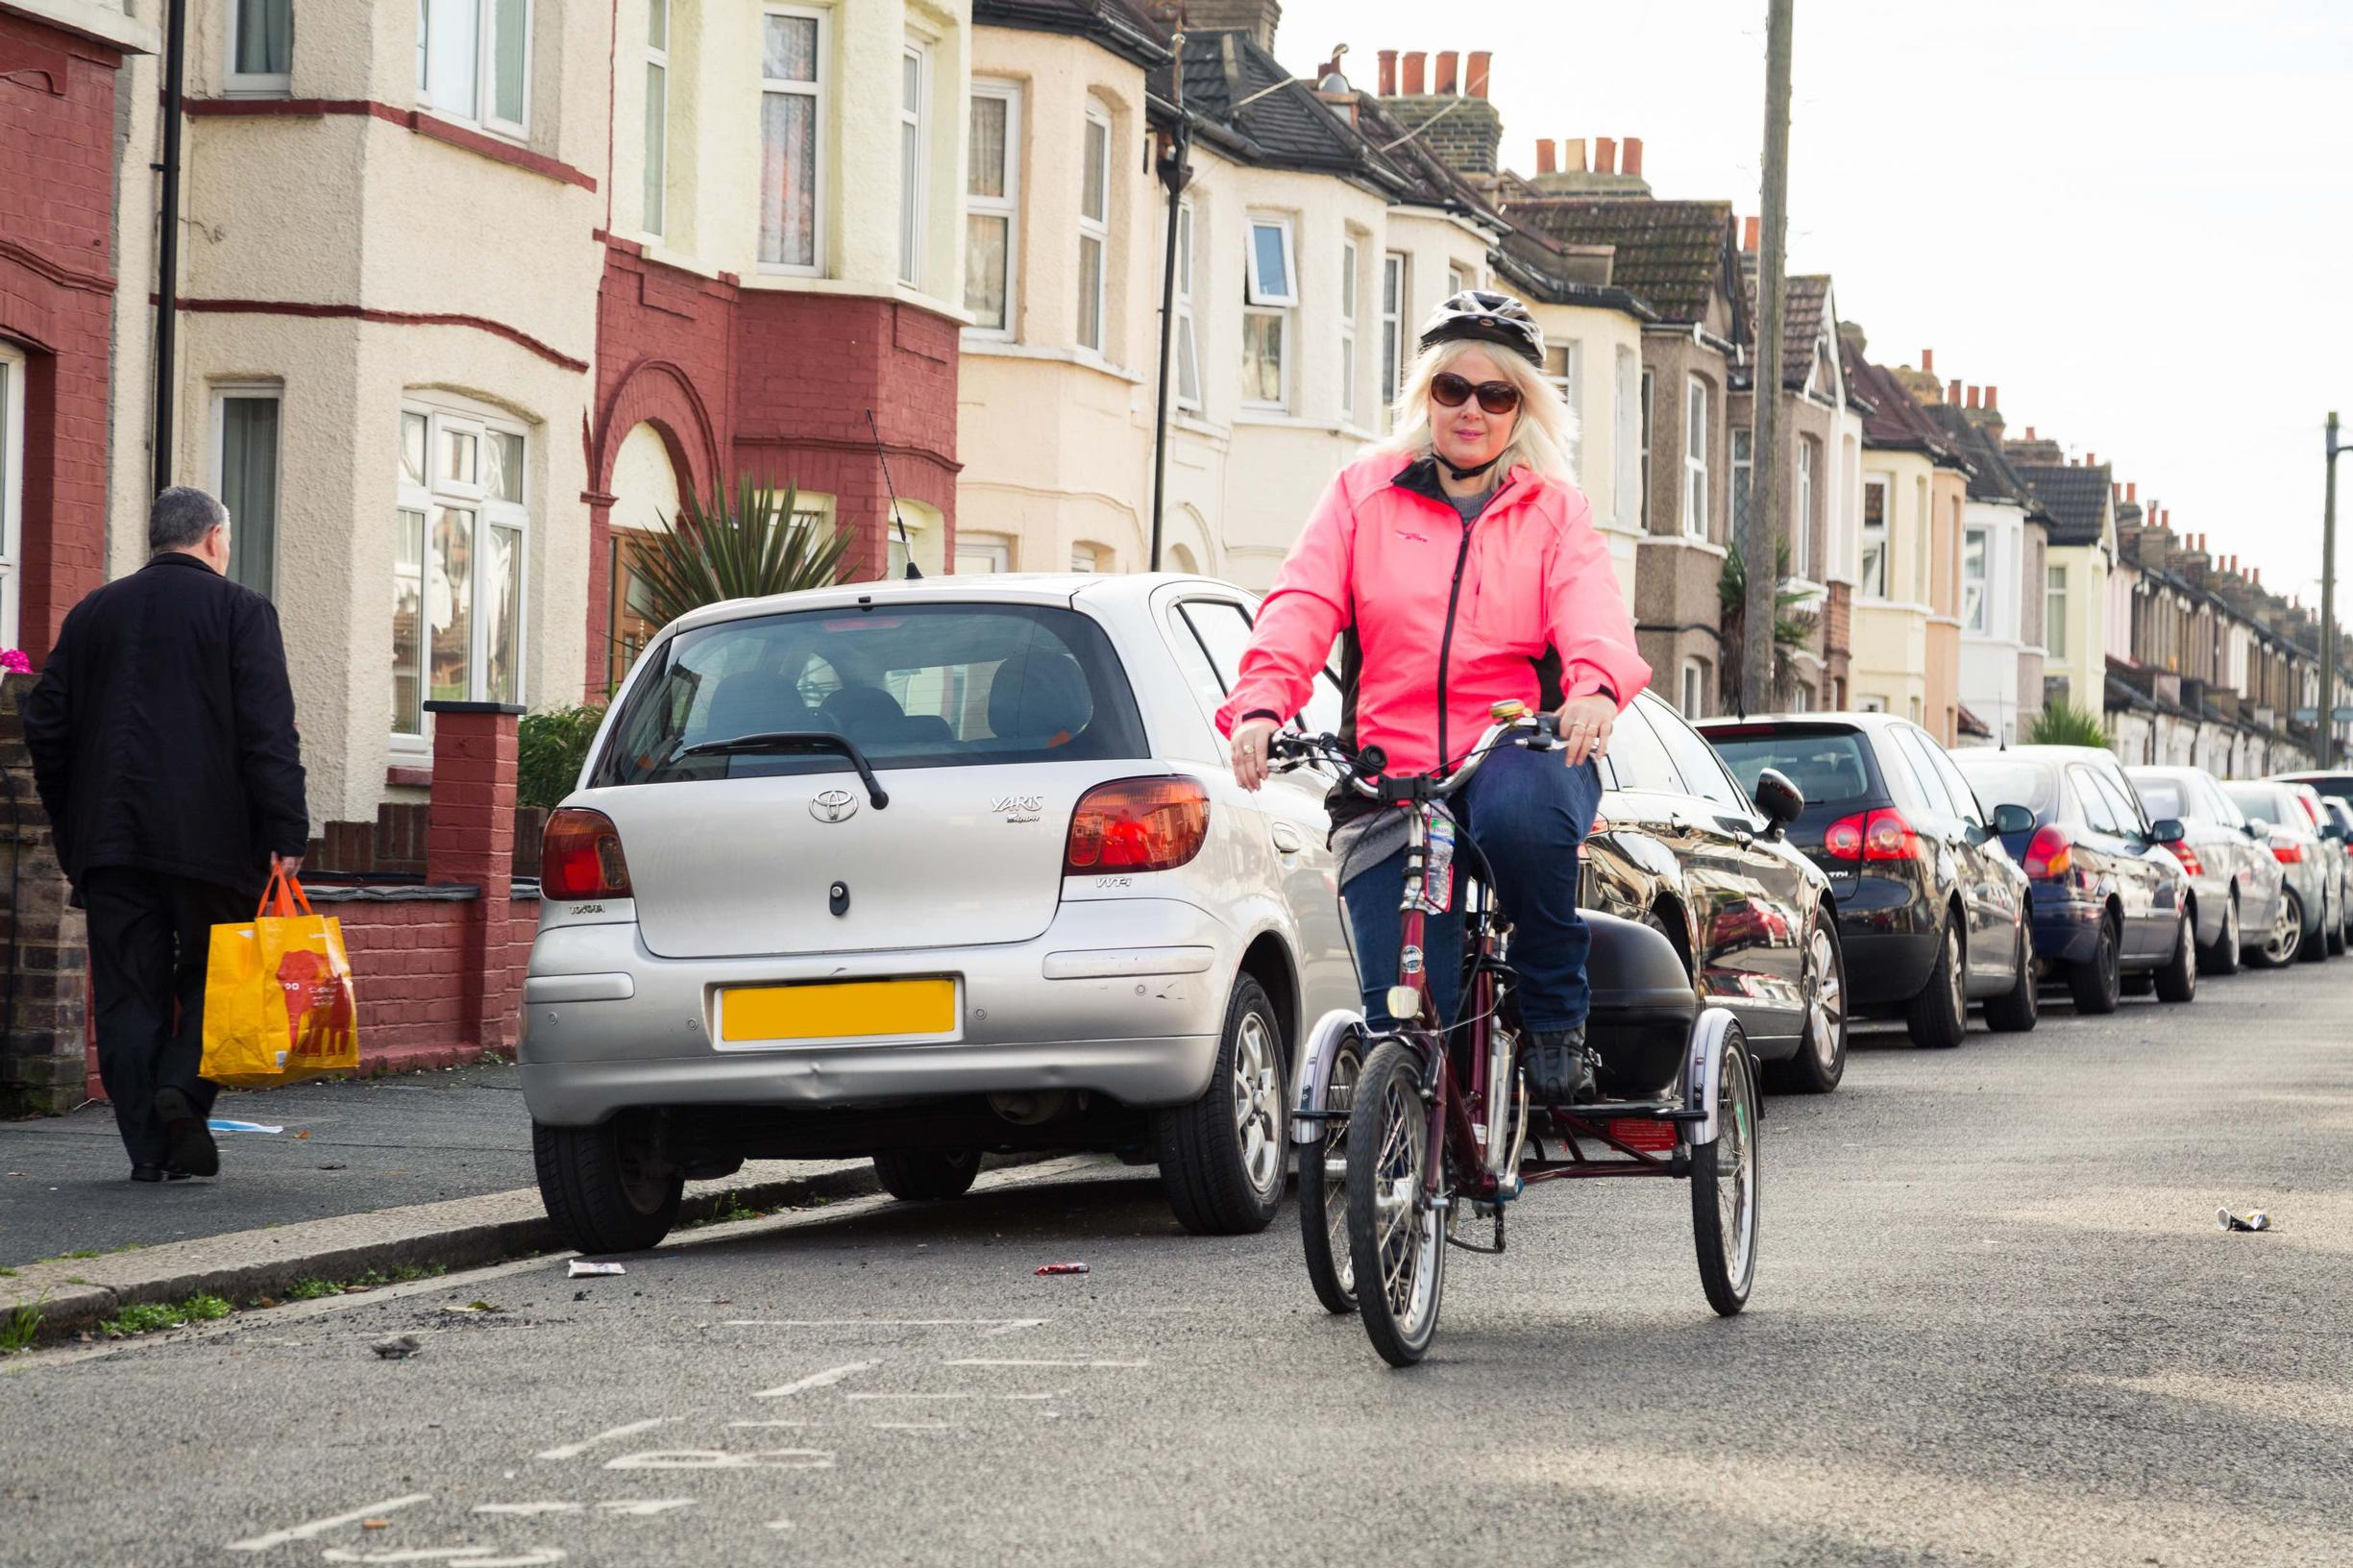 Cycling infrastructure design standards should meet the needs of those using adapted cycles including tricycles, tandems and cargo bikes, says Sustrans/Arup report (Image: Wheels for Wellbeing)